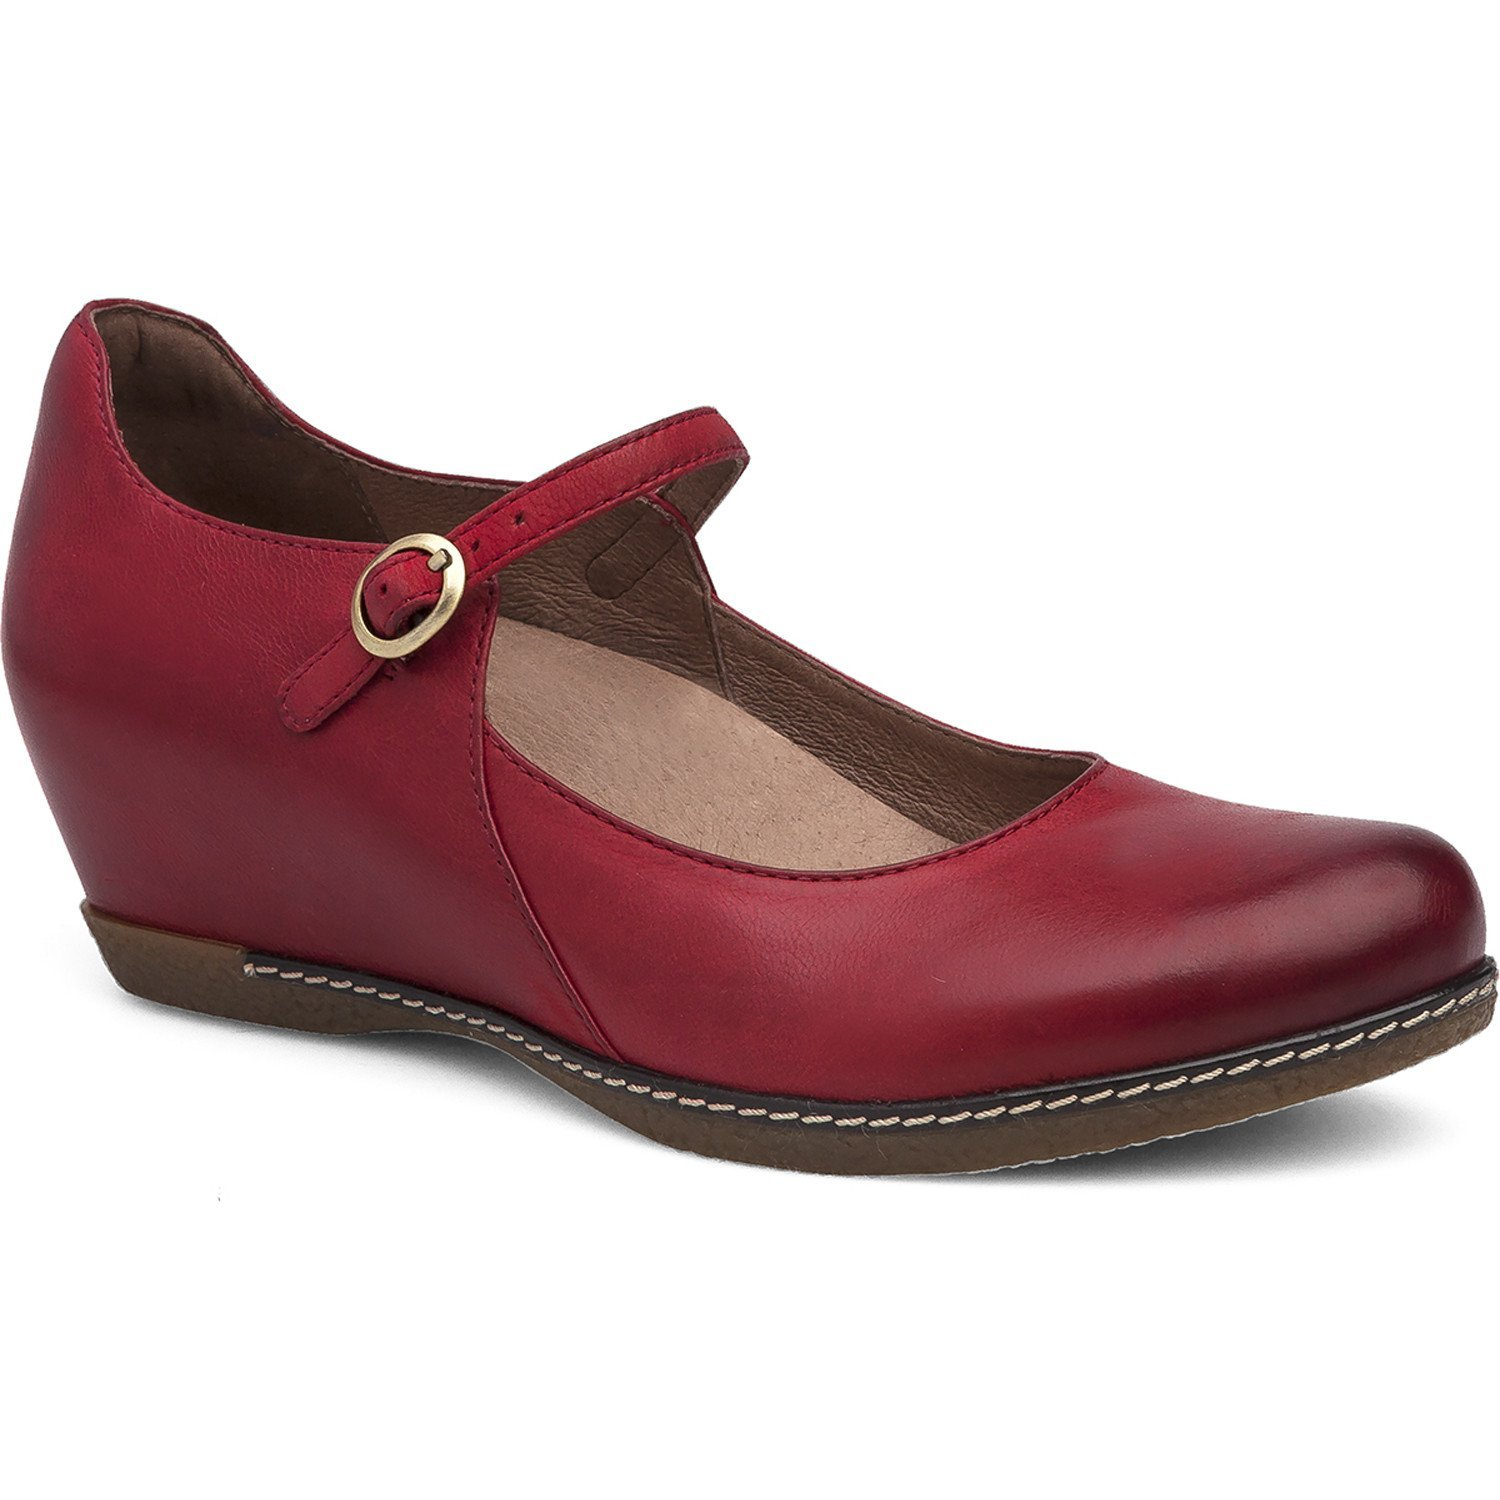 Dansko Loralie Women's Slip On (37 M EU, Red Burnished Nubuck)